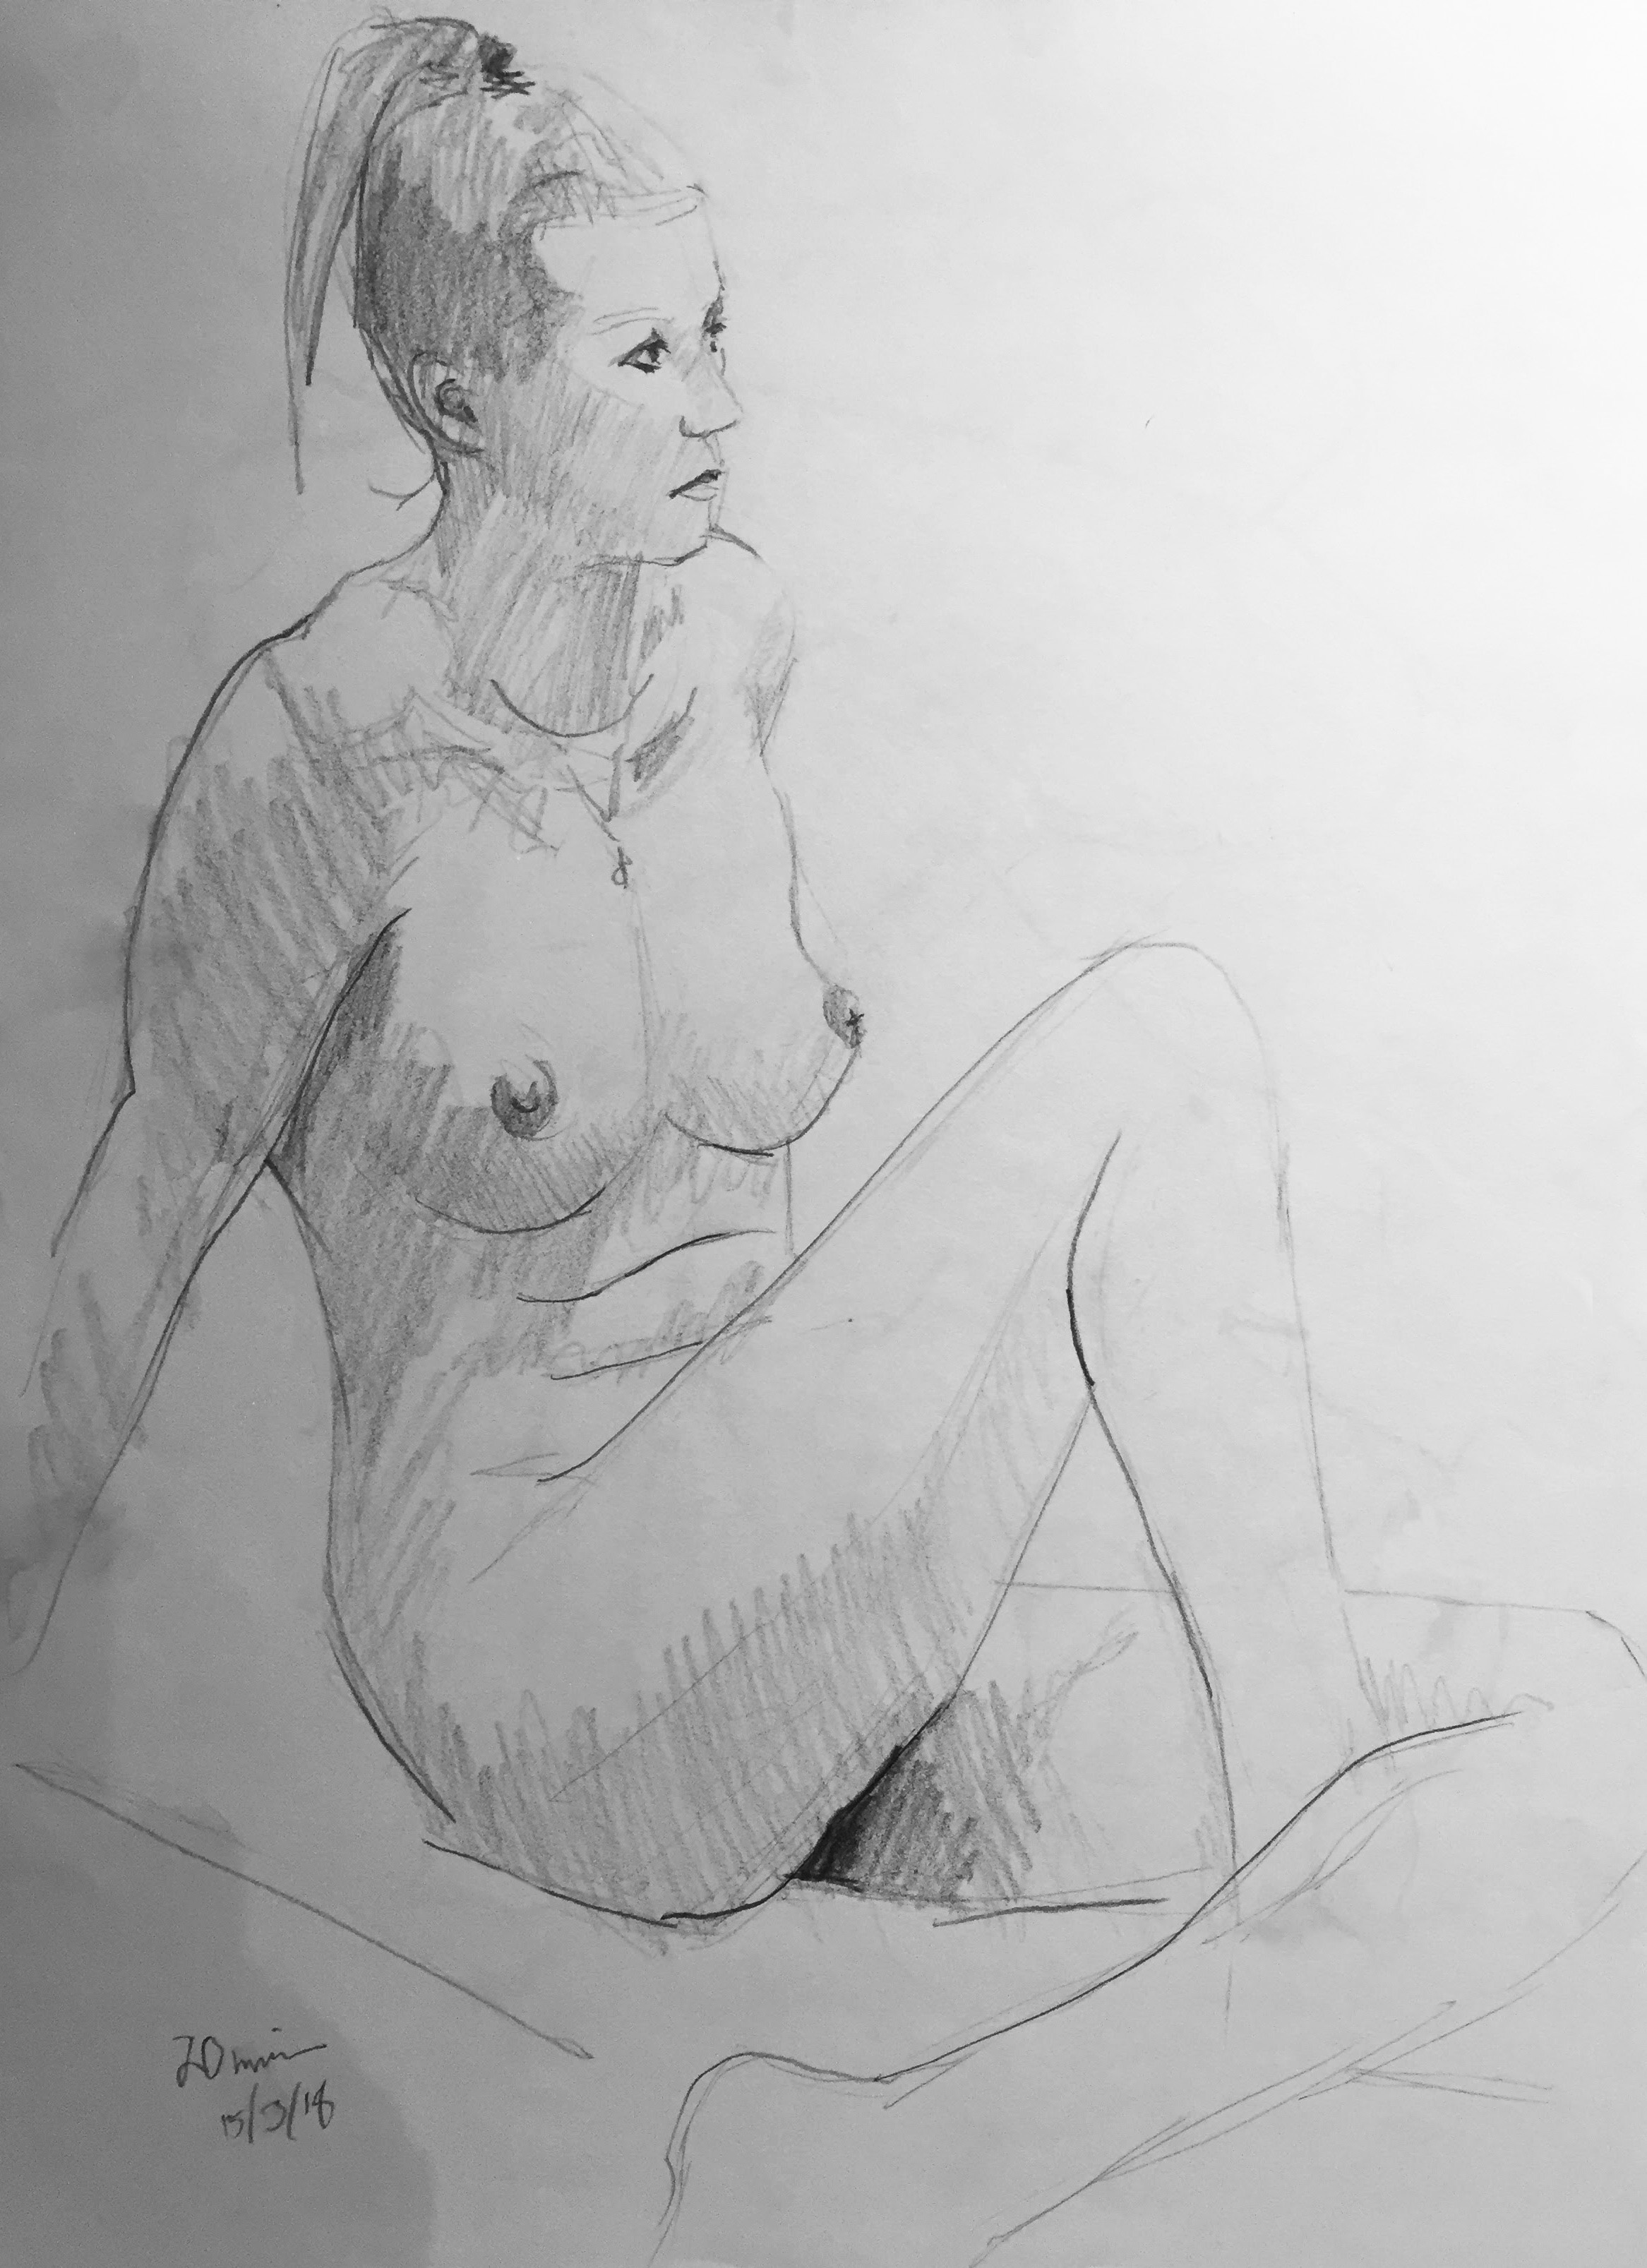 Life Drawing Sketch 1 Session 15/3/18